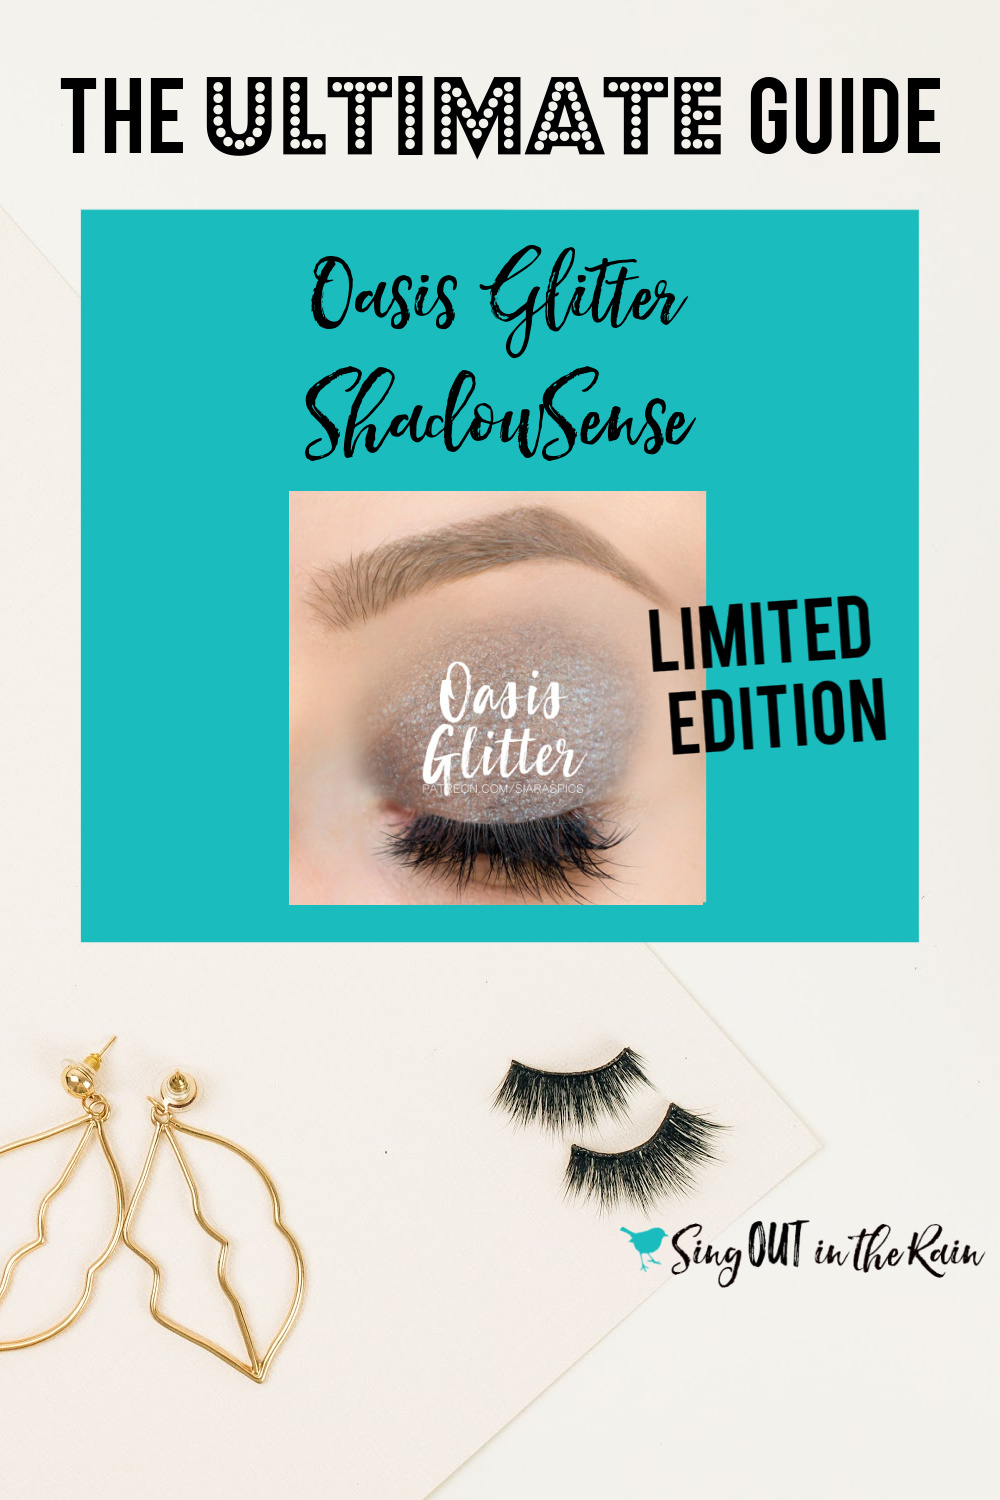 The Ultimate Guide to Oasis Glitter ShadowSense